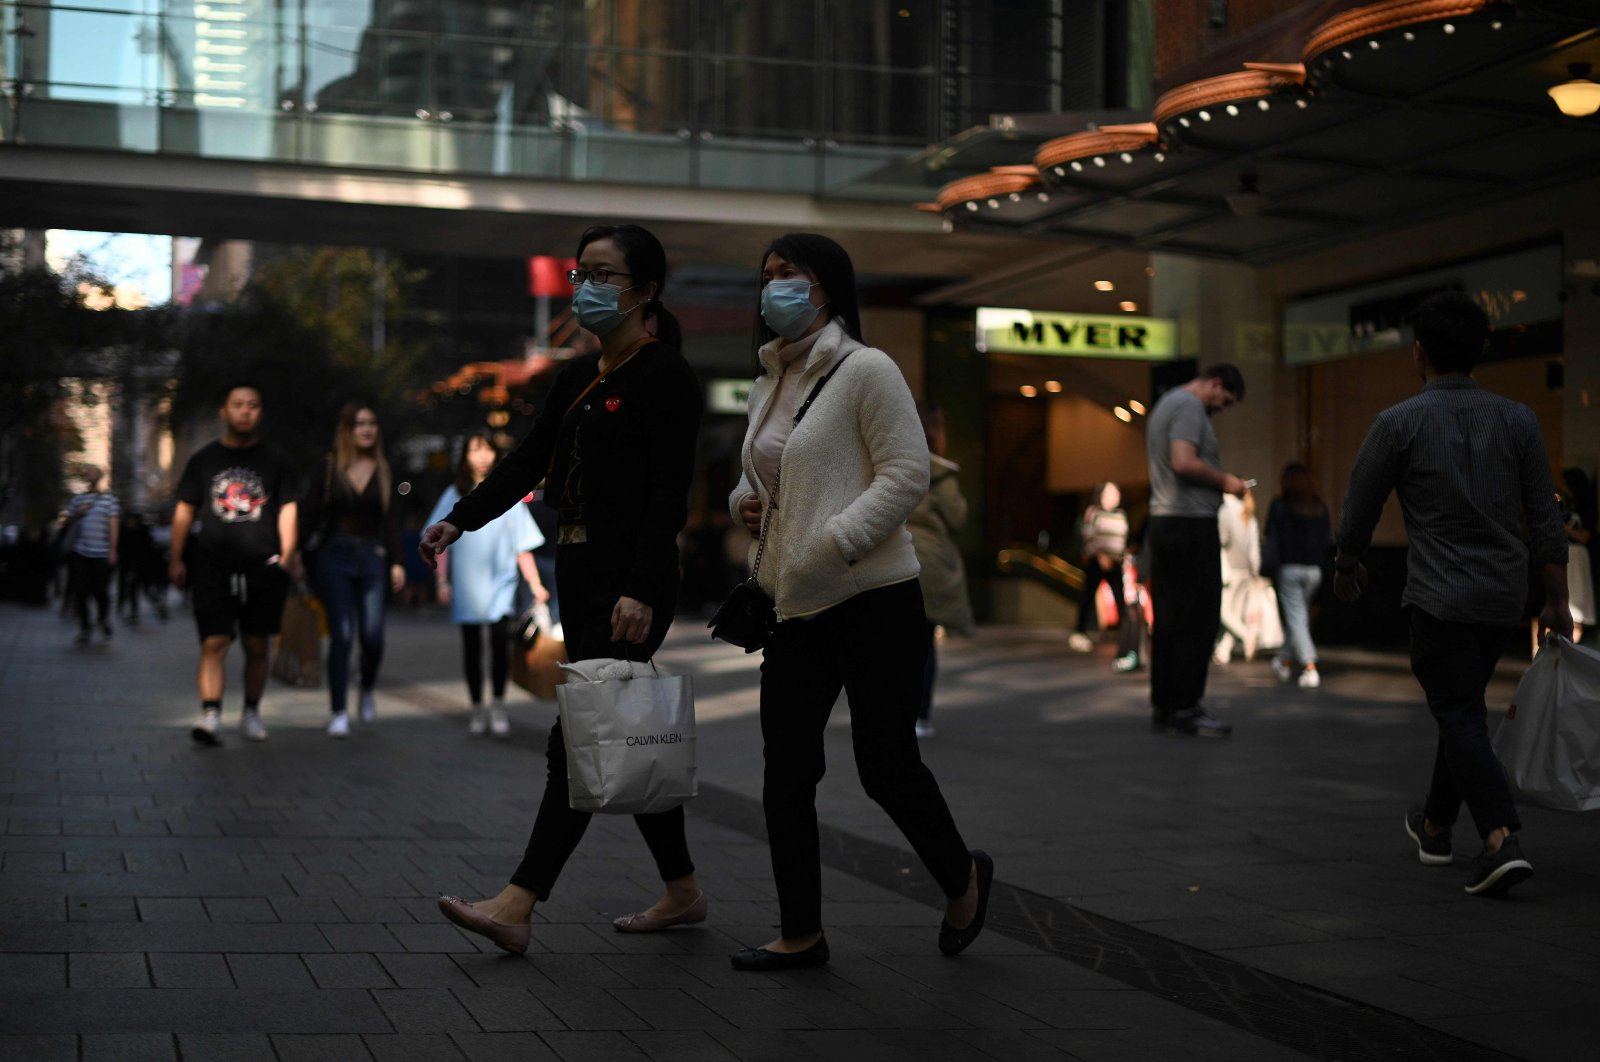 People wearing face masks walk through a shopping district in central Sydney on May 19, 2020. (AFP Photo)